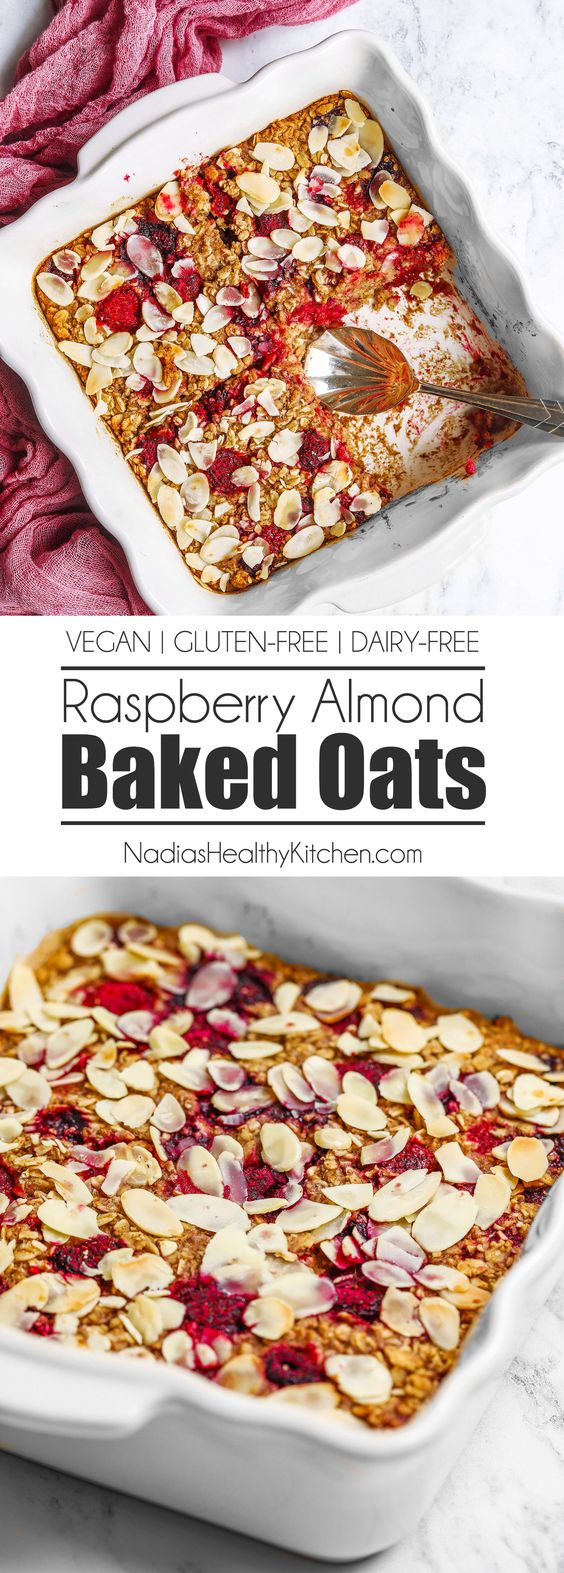 RASPBERRY ALMOND BAKED OATS